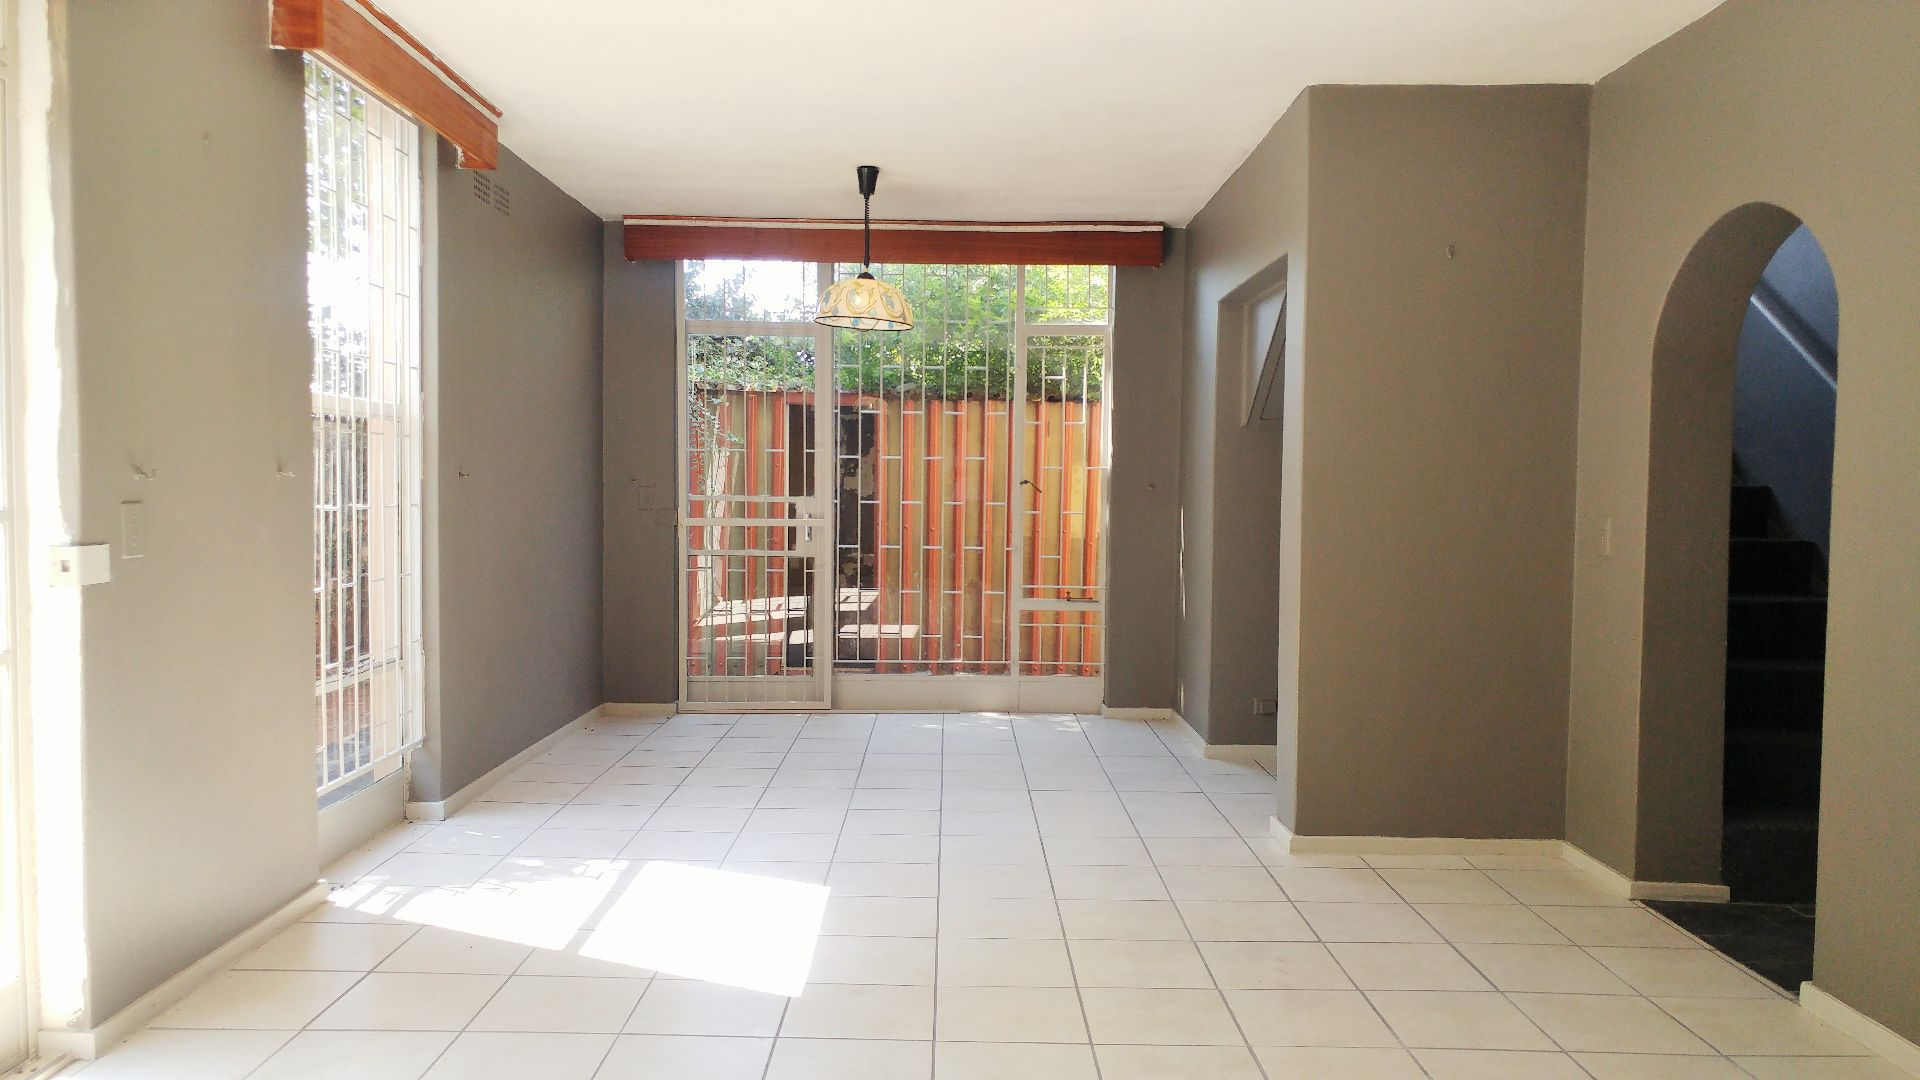 Potchefstroom Central property for sale. Ref No: 13547446. Picture no 12